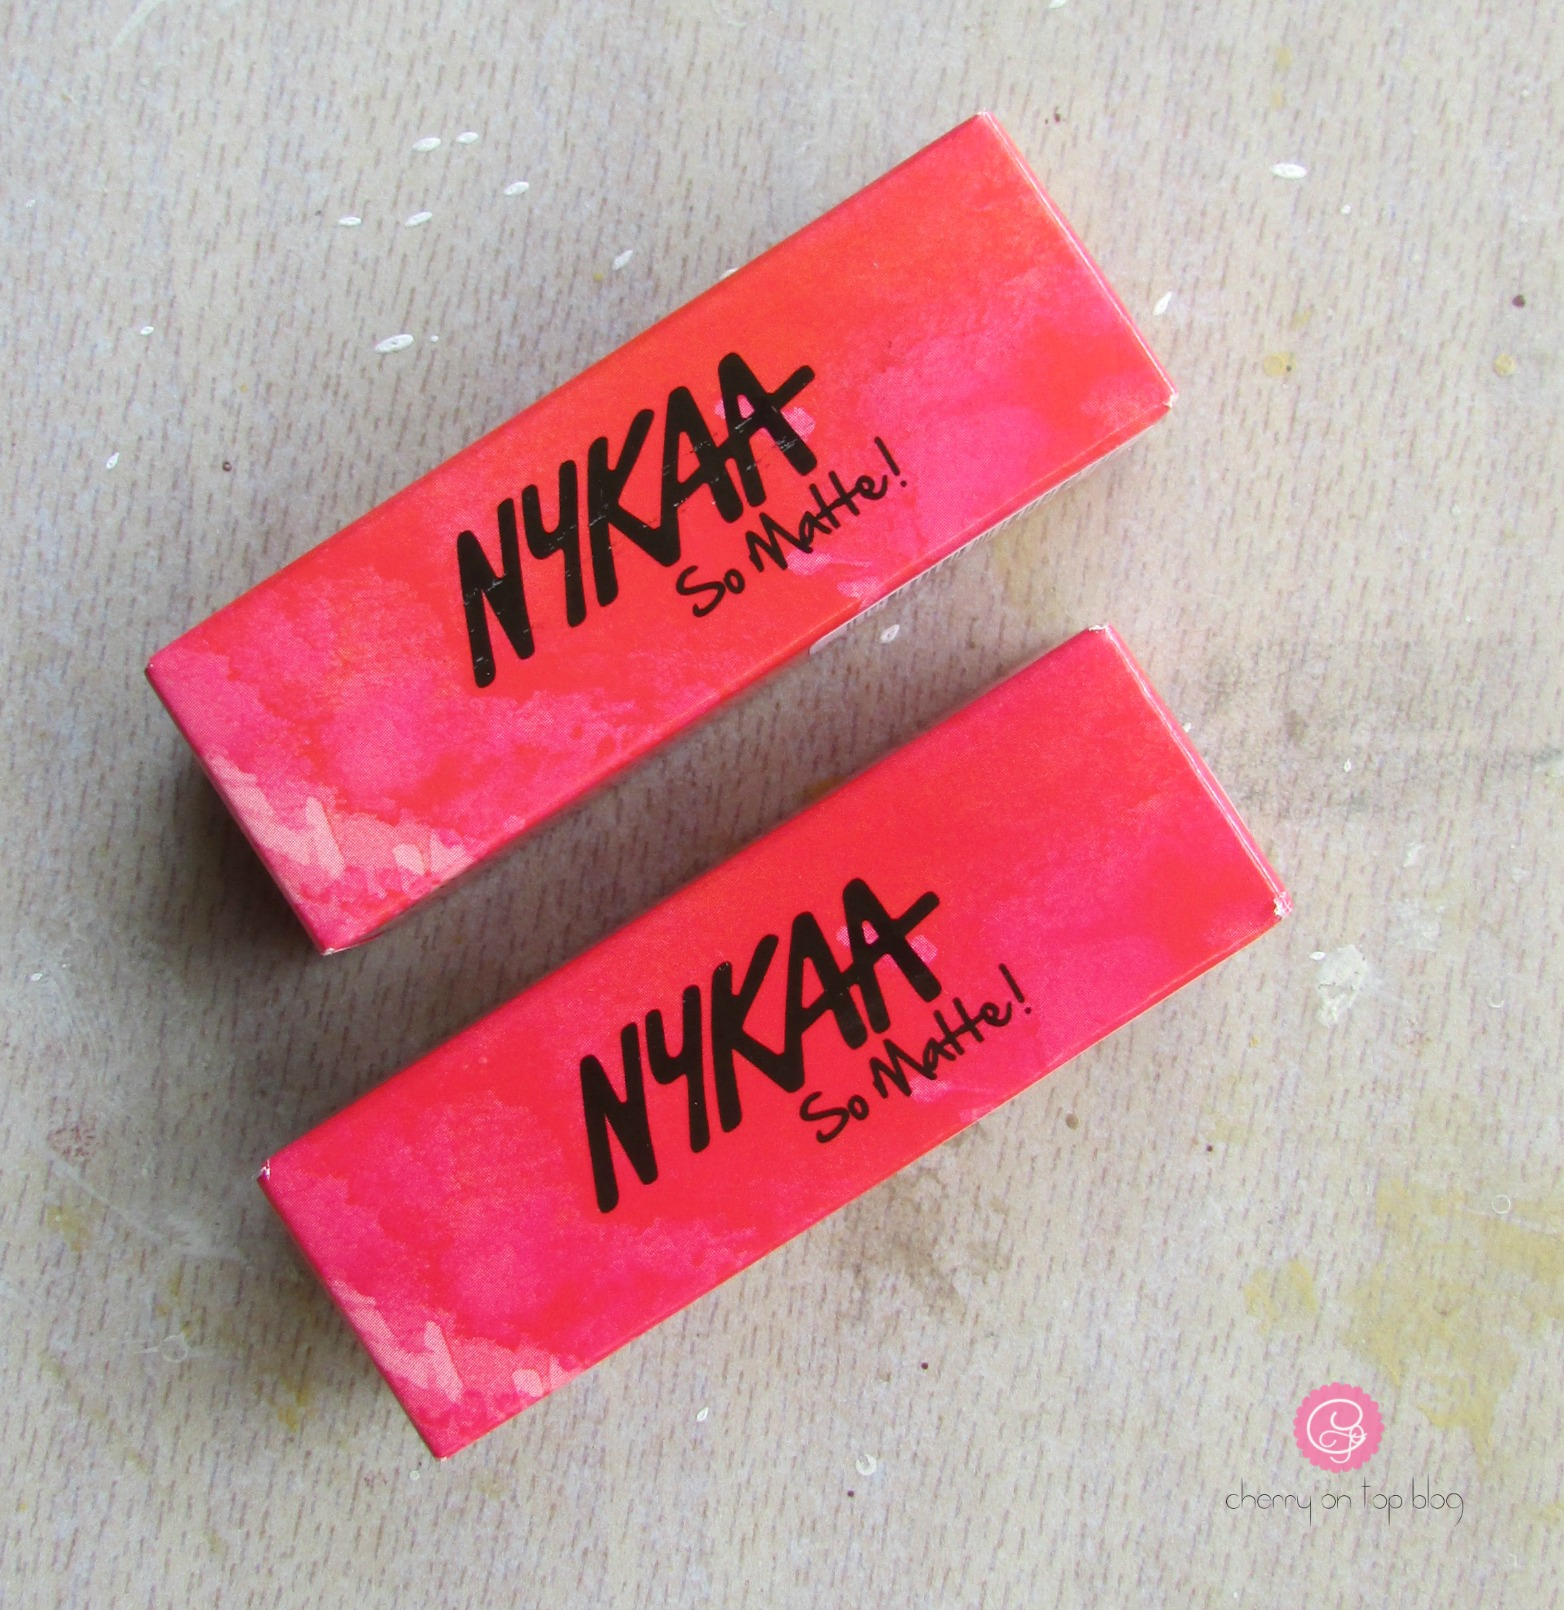 Nykaa So Matte Fall/Winter Collection Lipsticks Irish Coffee & Caramel Margarita | Review & Swatches| Cherry On Top